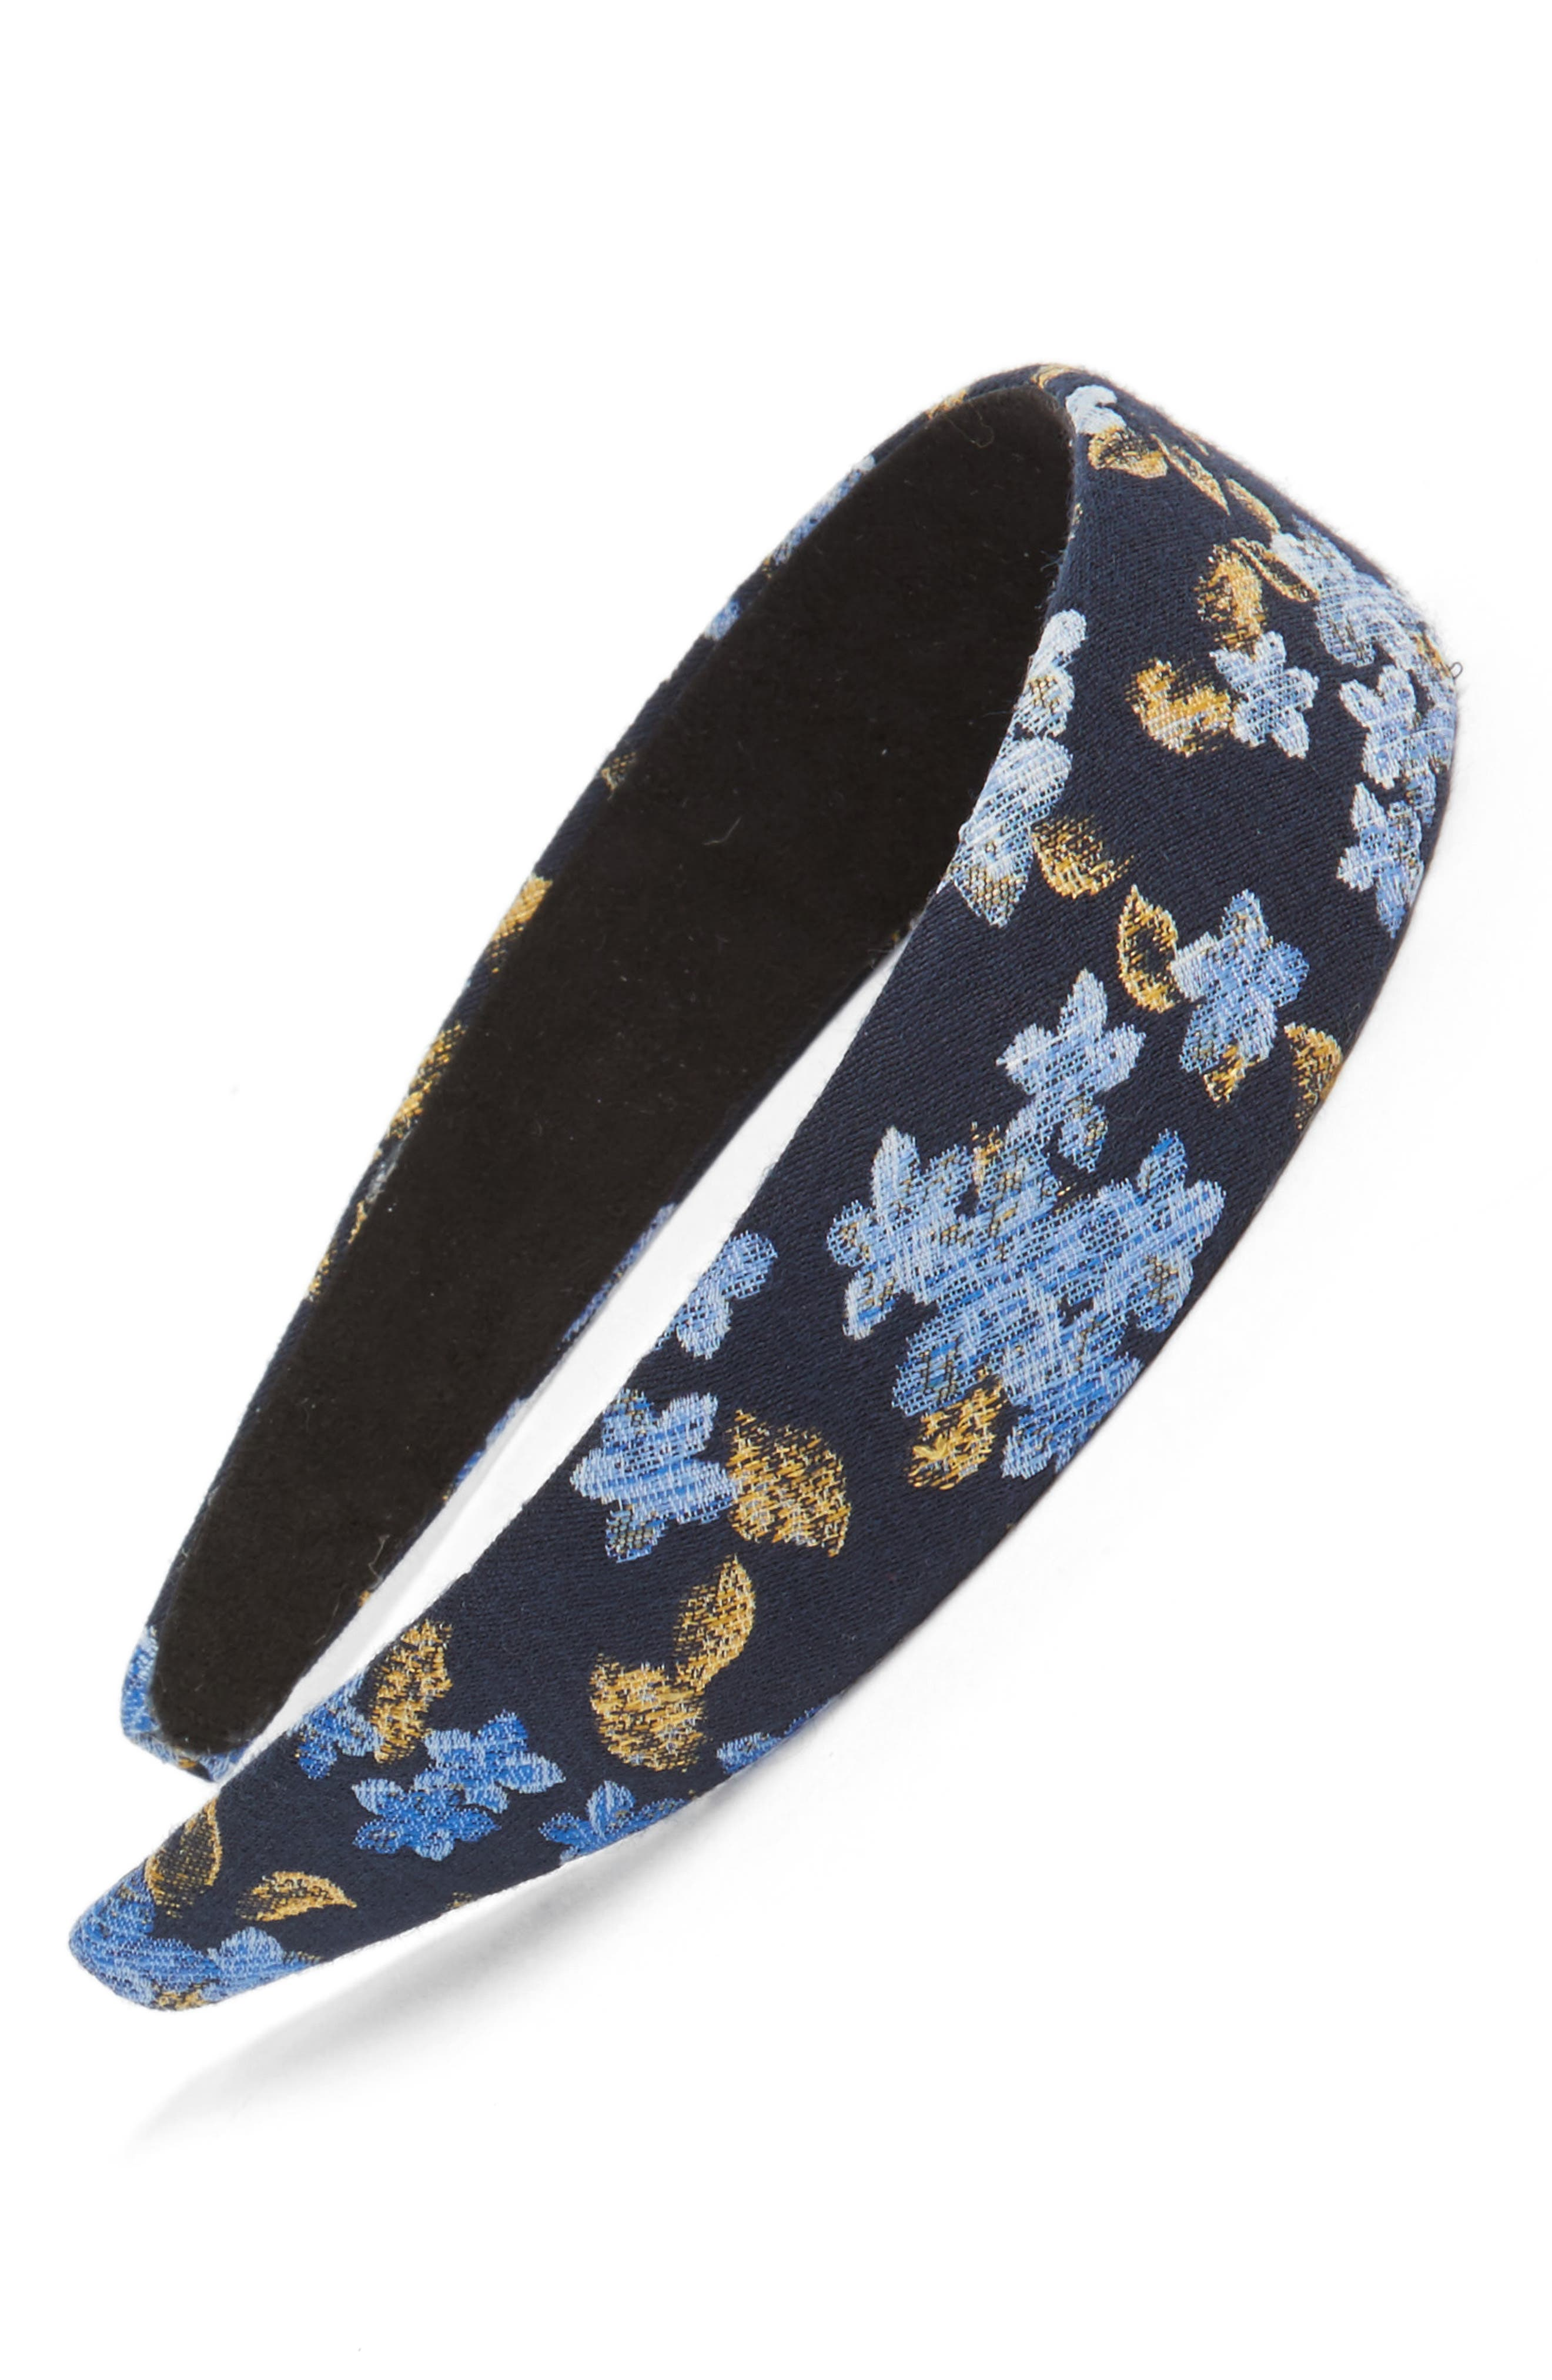 Floral Brocade Headband,                         Main,                         color, Blue/ Black